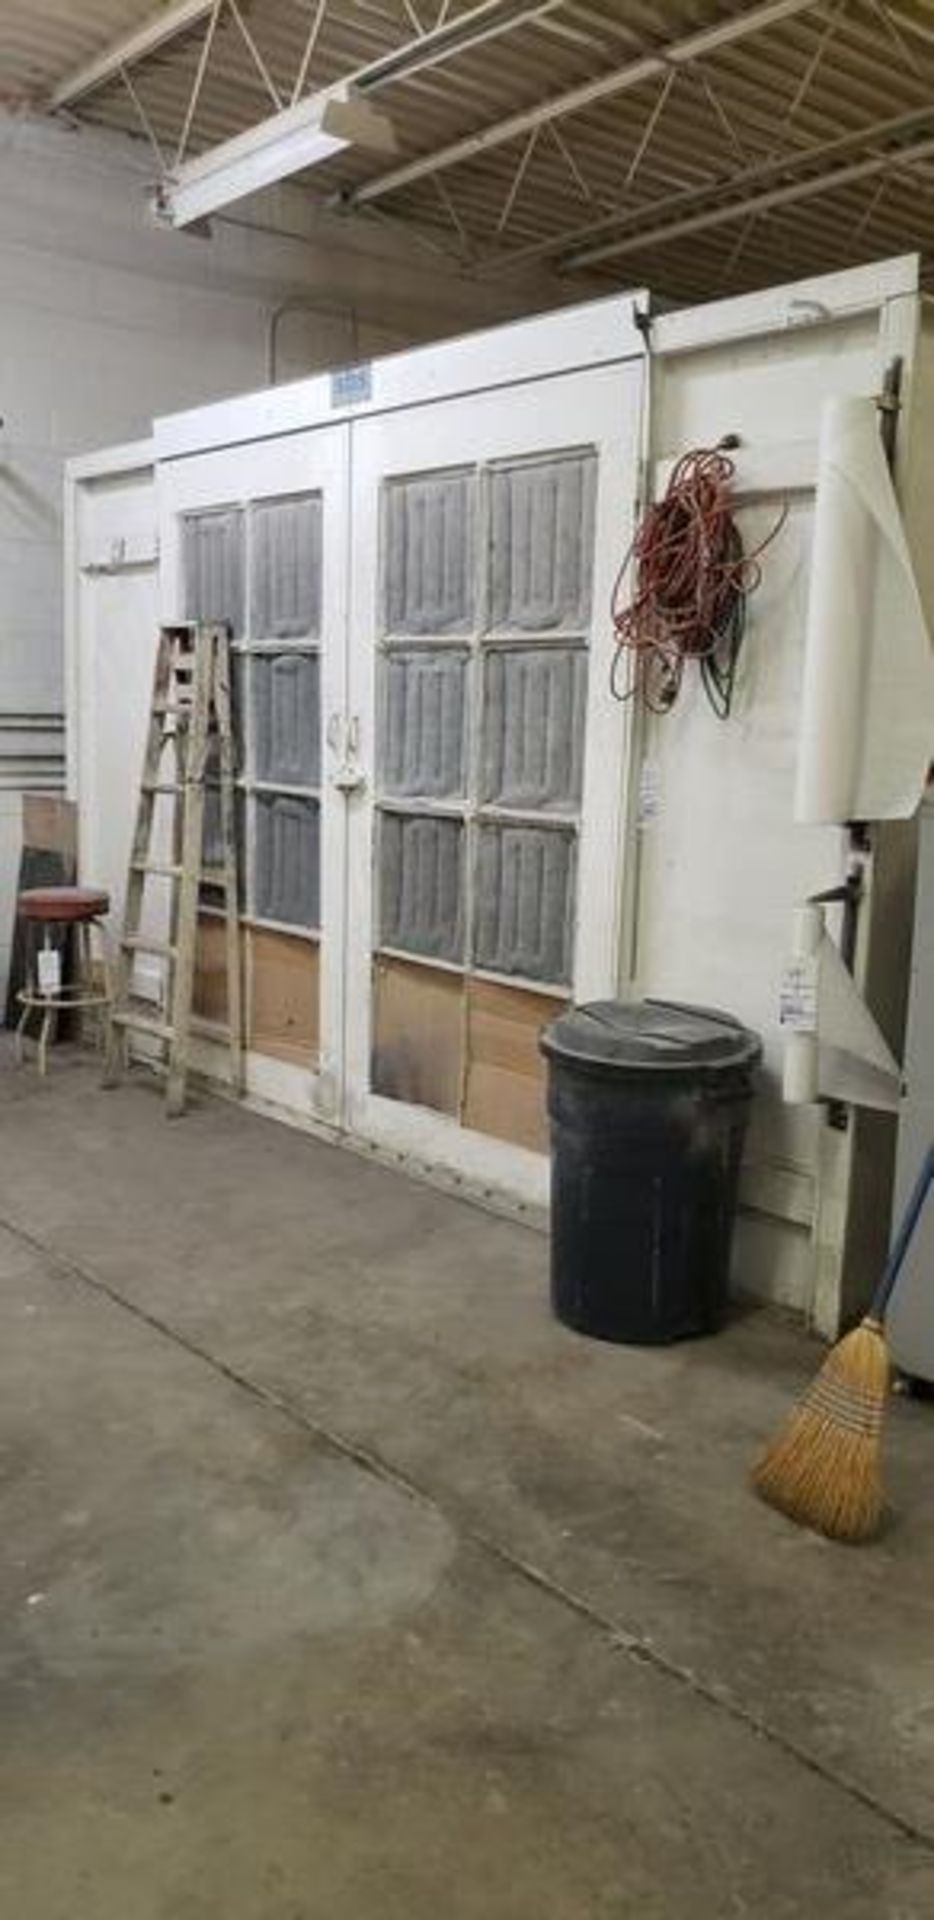 """SBS SPRAYBOOTH SYSTEM WITH LIGHTS AND EXHAUST - 14'2"""" X 24'9"""" X 8'6"""" - BUYER MUST CAP THE ROOF - Image 2 of 10"""